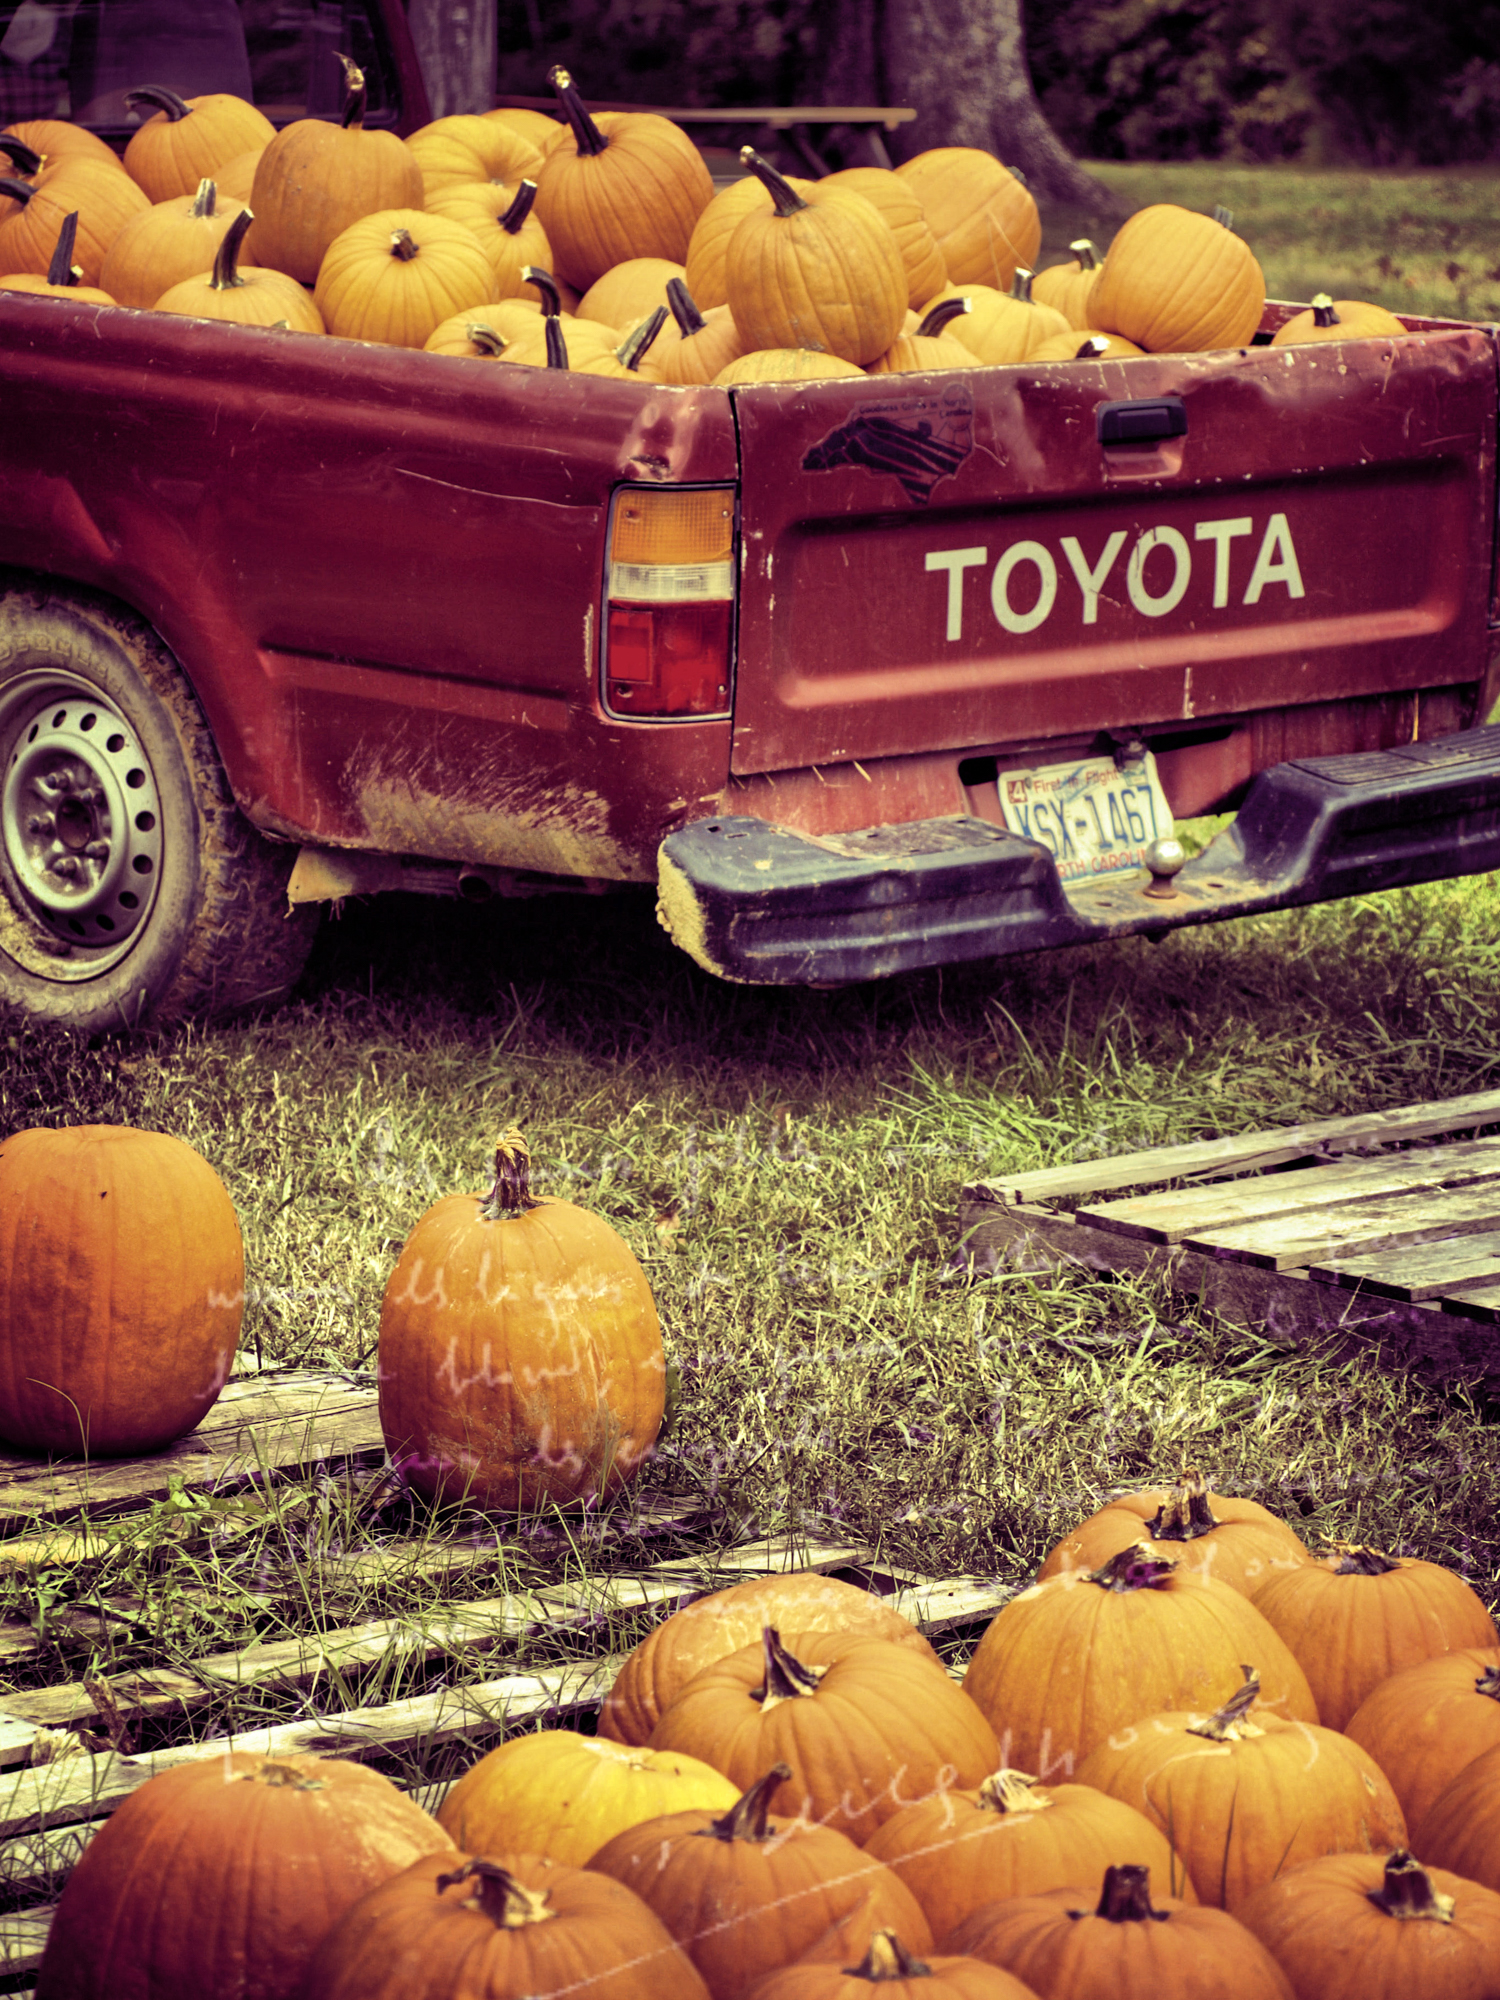 Autumn pumpkins spill out of the truck beautifully and on to the ground at Ganyard Hill Farm in Durham, North Carolina.